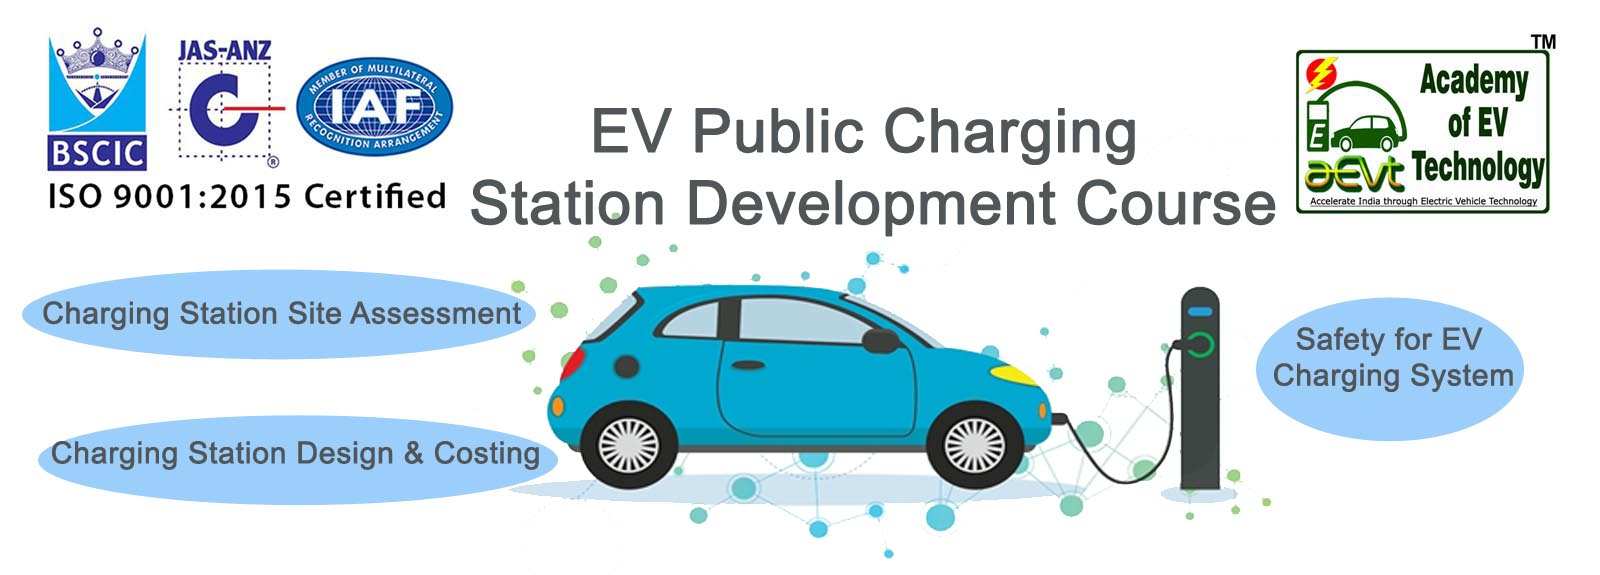 EV Training Photo